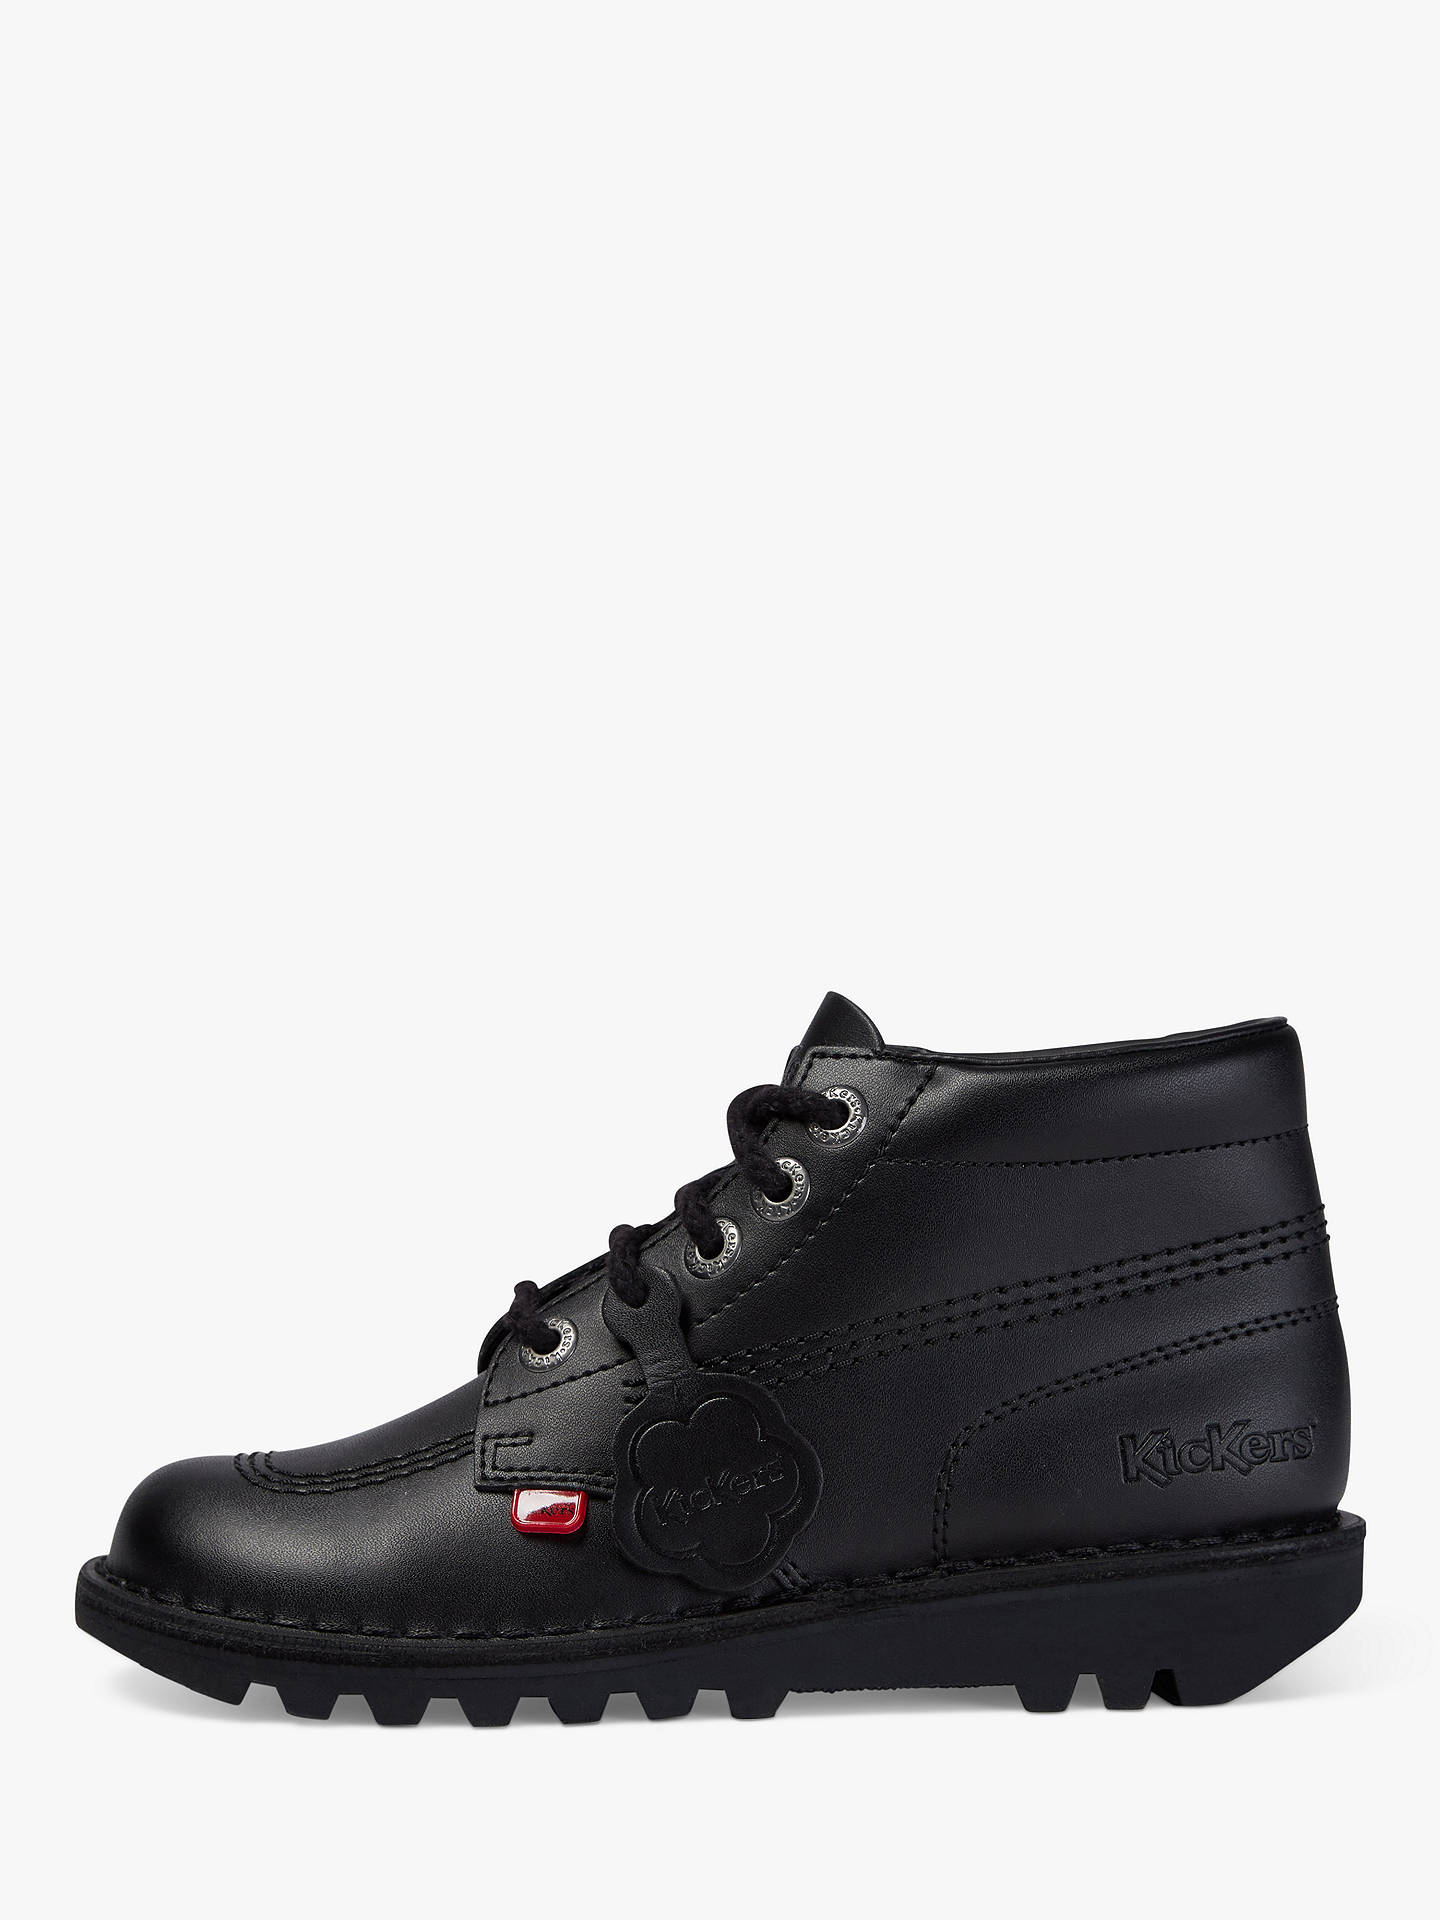 BuyKickers Leather Lace-Up Hi Boots, Black, 28 Online at johnlewis.com